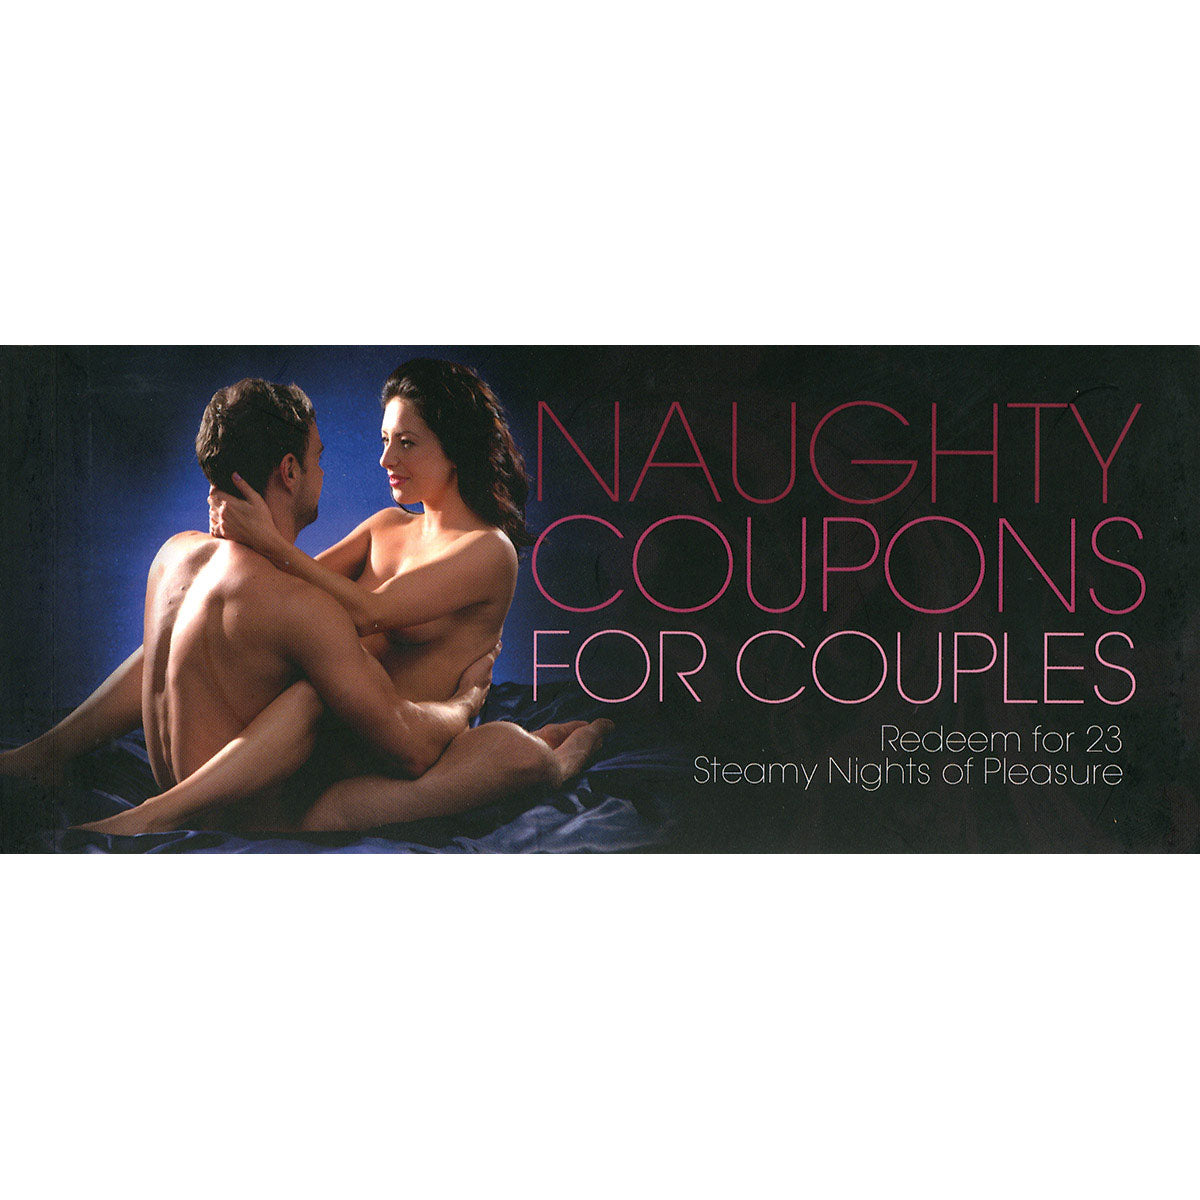 Amorata Press Naughty Coupons for Couples - Redeem for 23 Steamy Nights of Pleasure